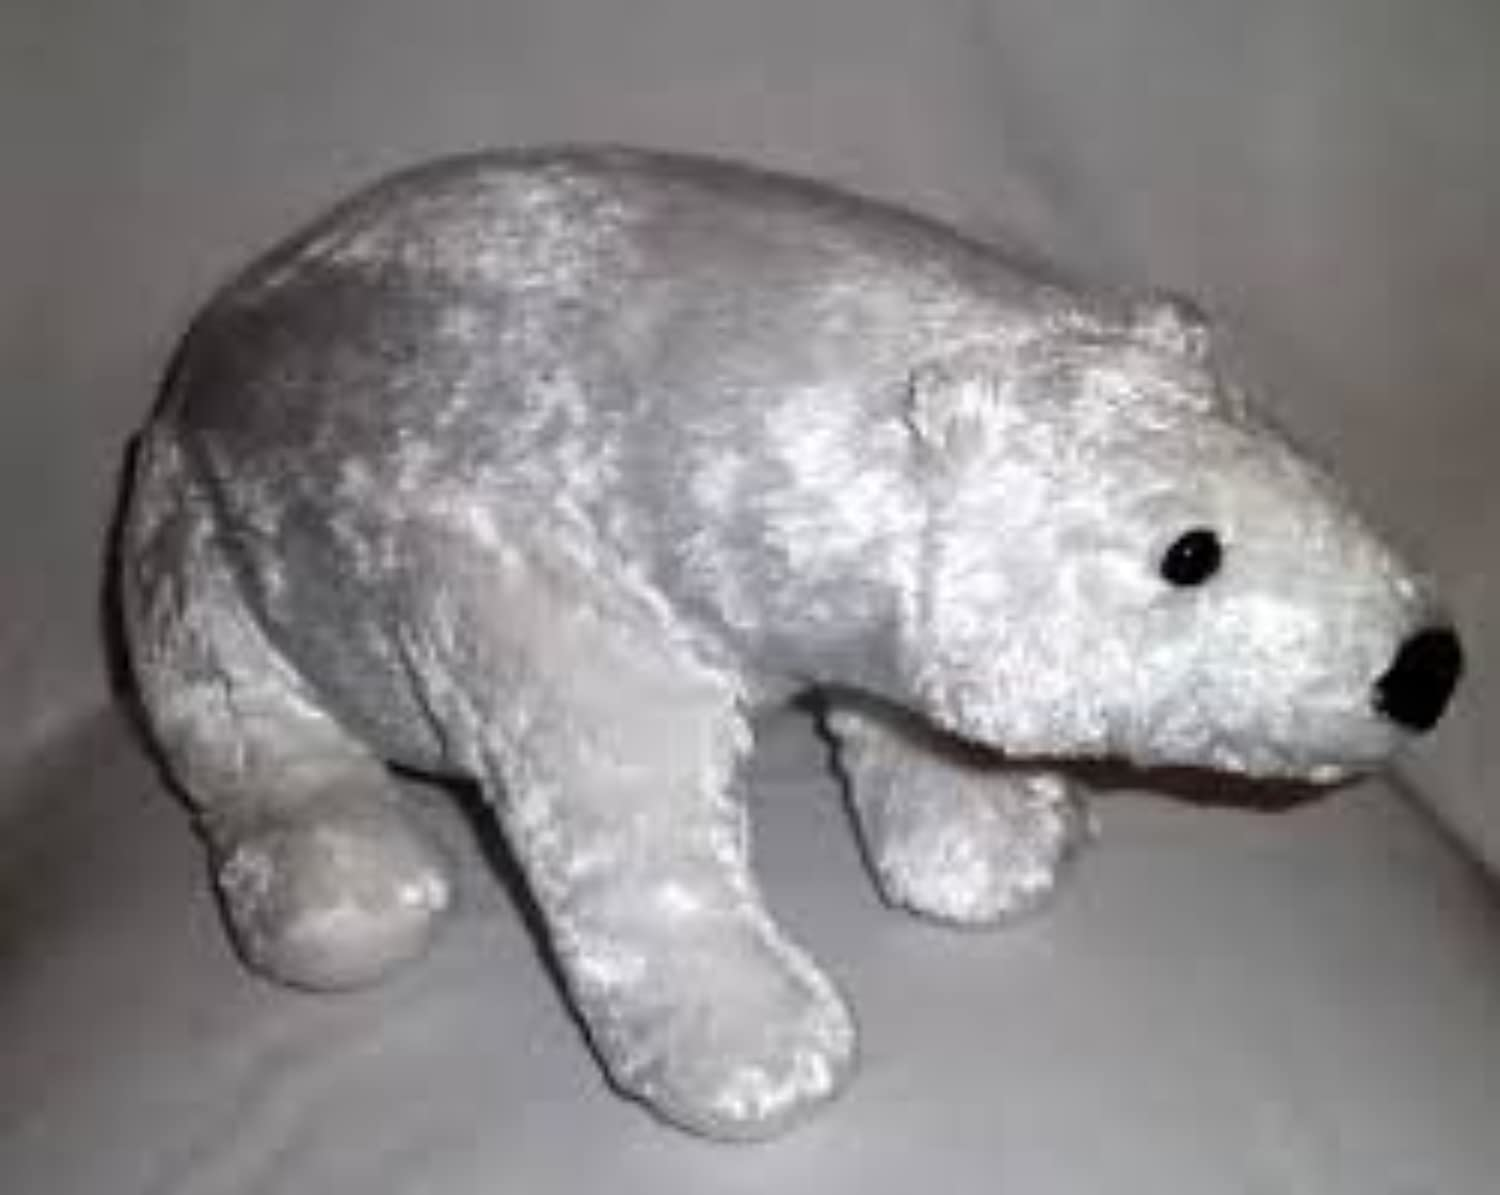 The World of Eric Carle 12 Inch Plush Polar Bear by Eric Carle